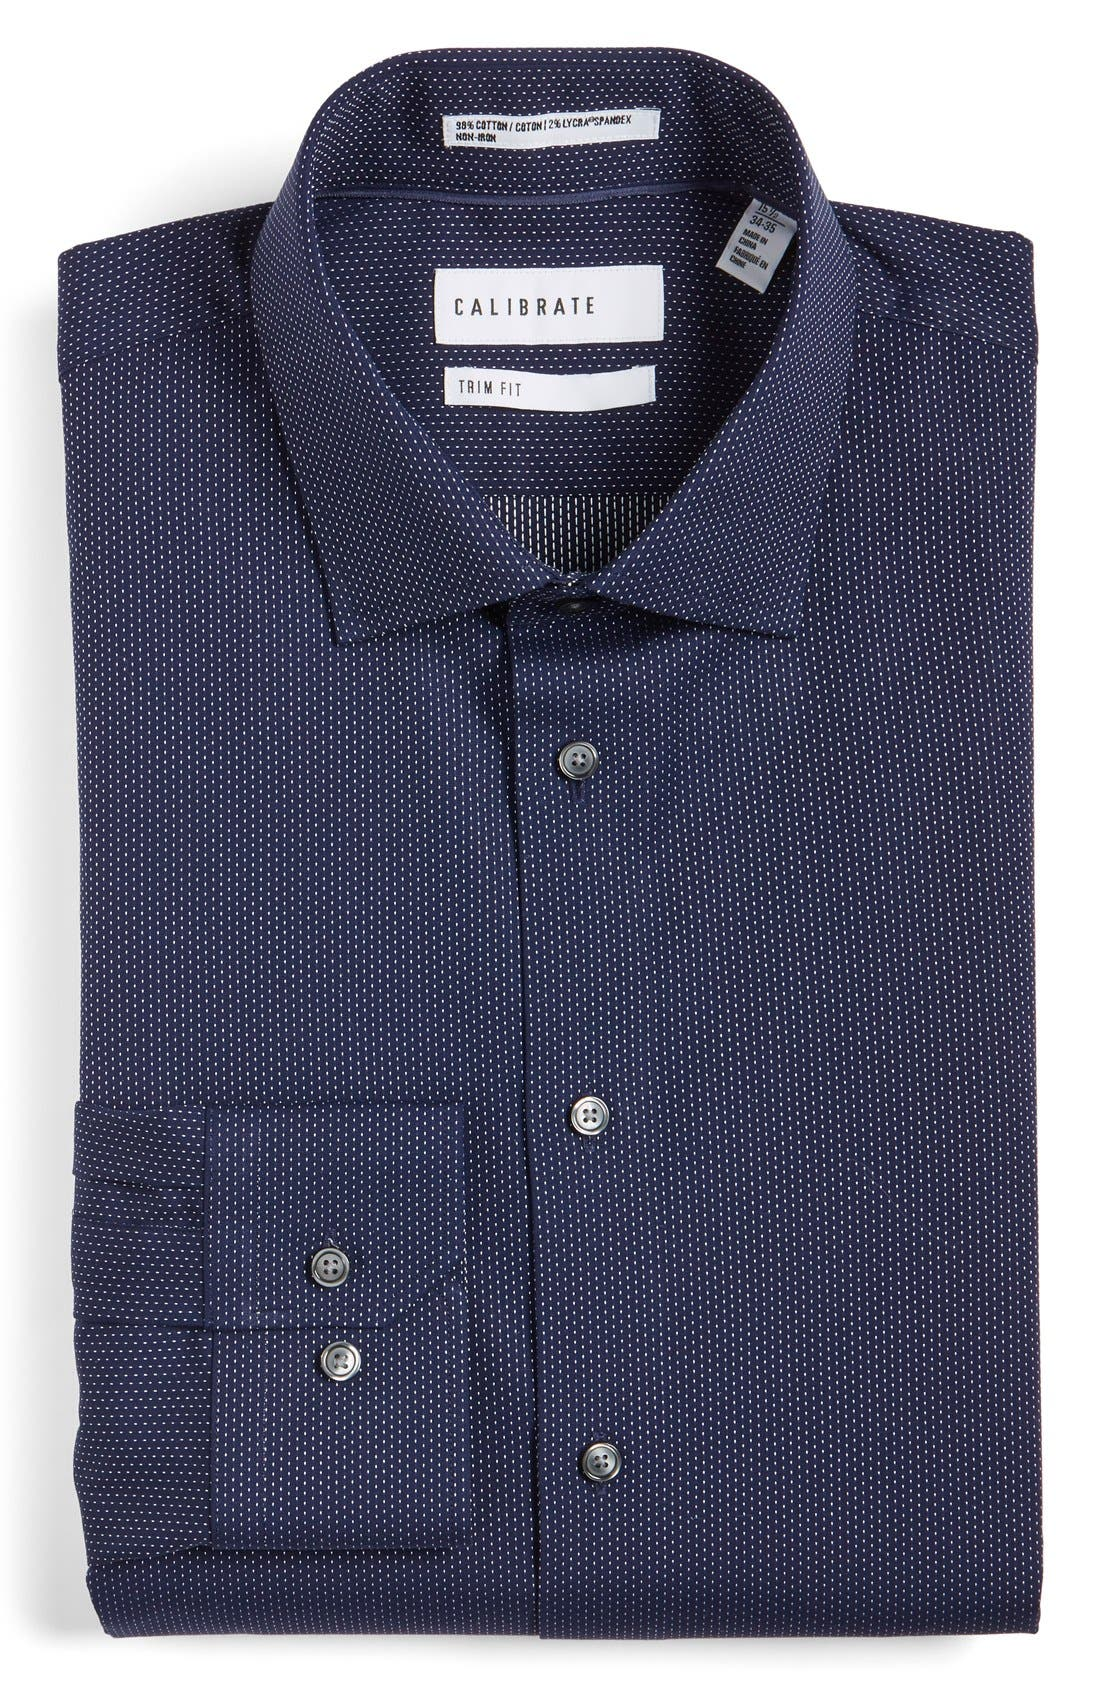 Main Image - Calibrate Trim Fit Non-Iron Microdot Dress Shirt